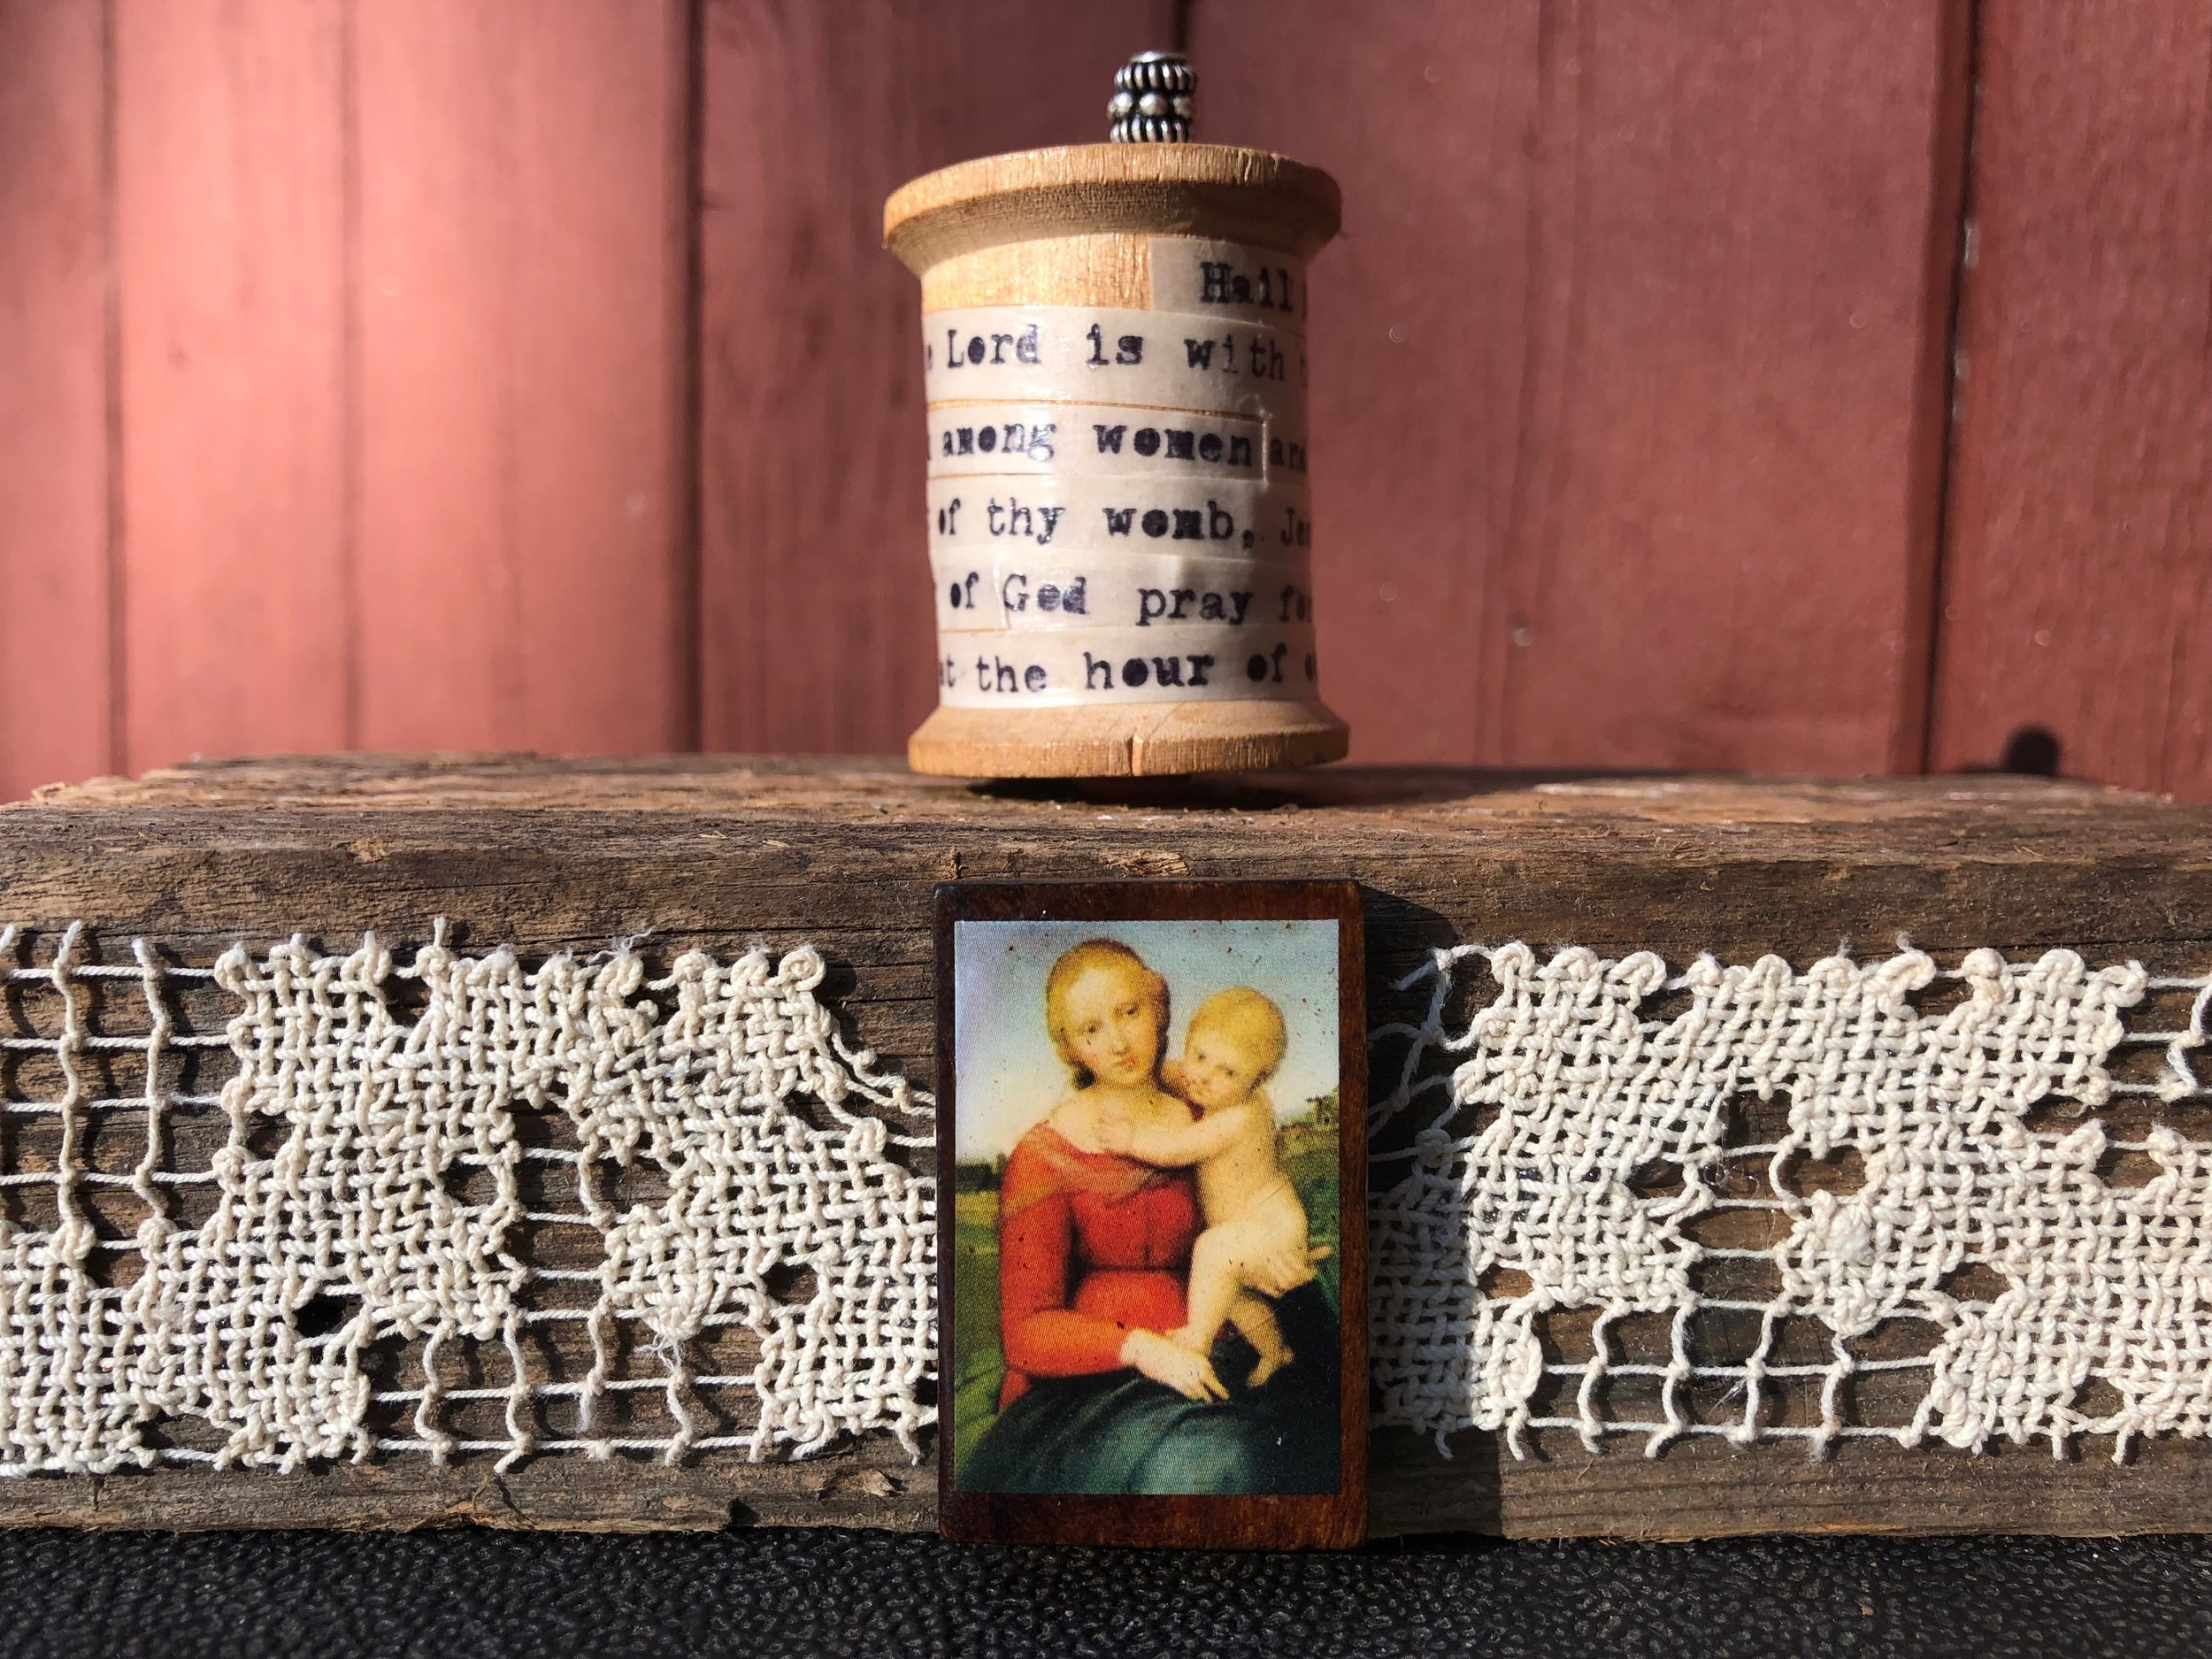 Prayer Spool - this version features the Hail Mary Prayer